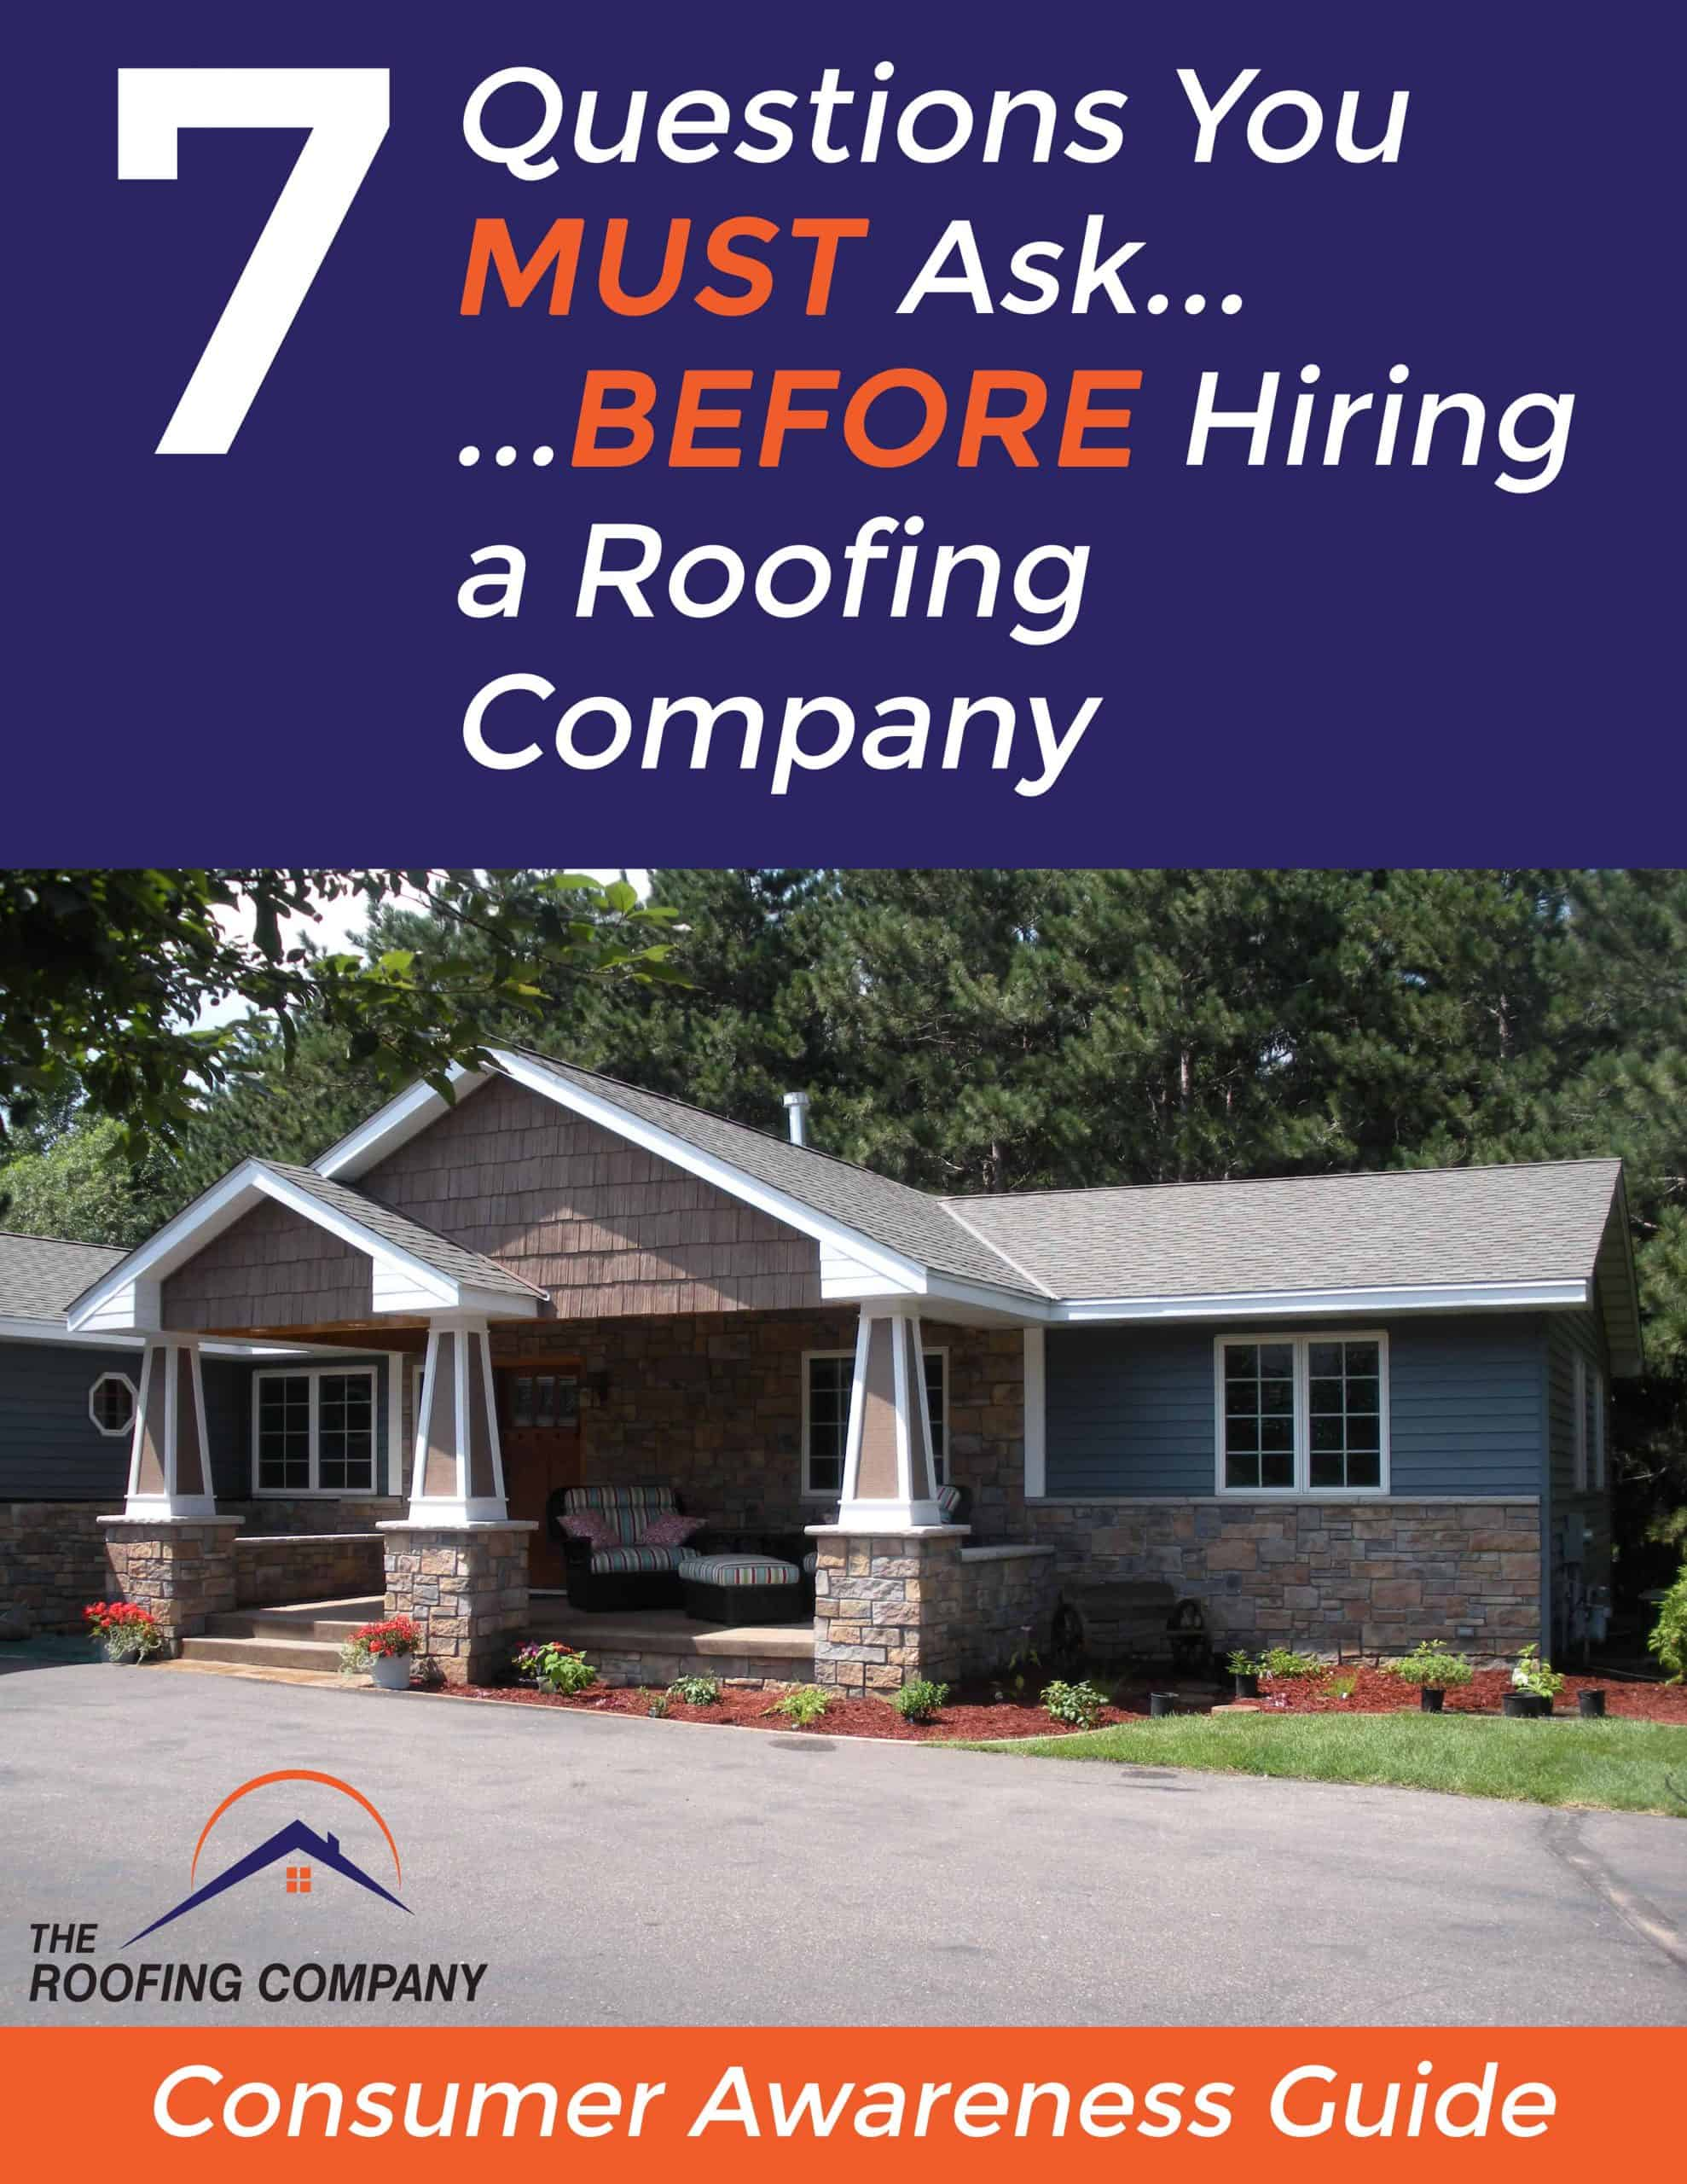 7 Questions You Must Ask BEFORE Hiring a Roofing Company